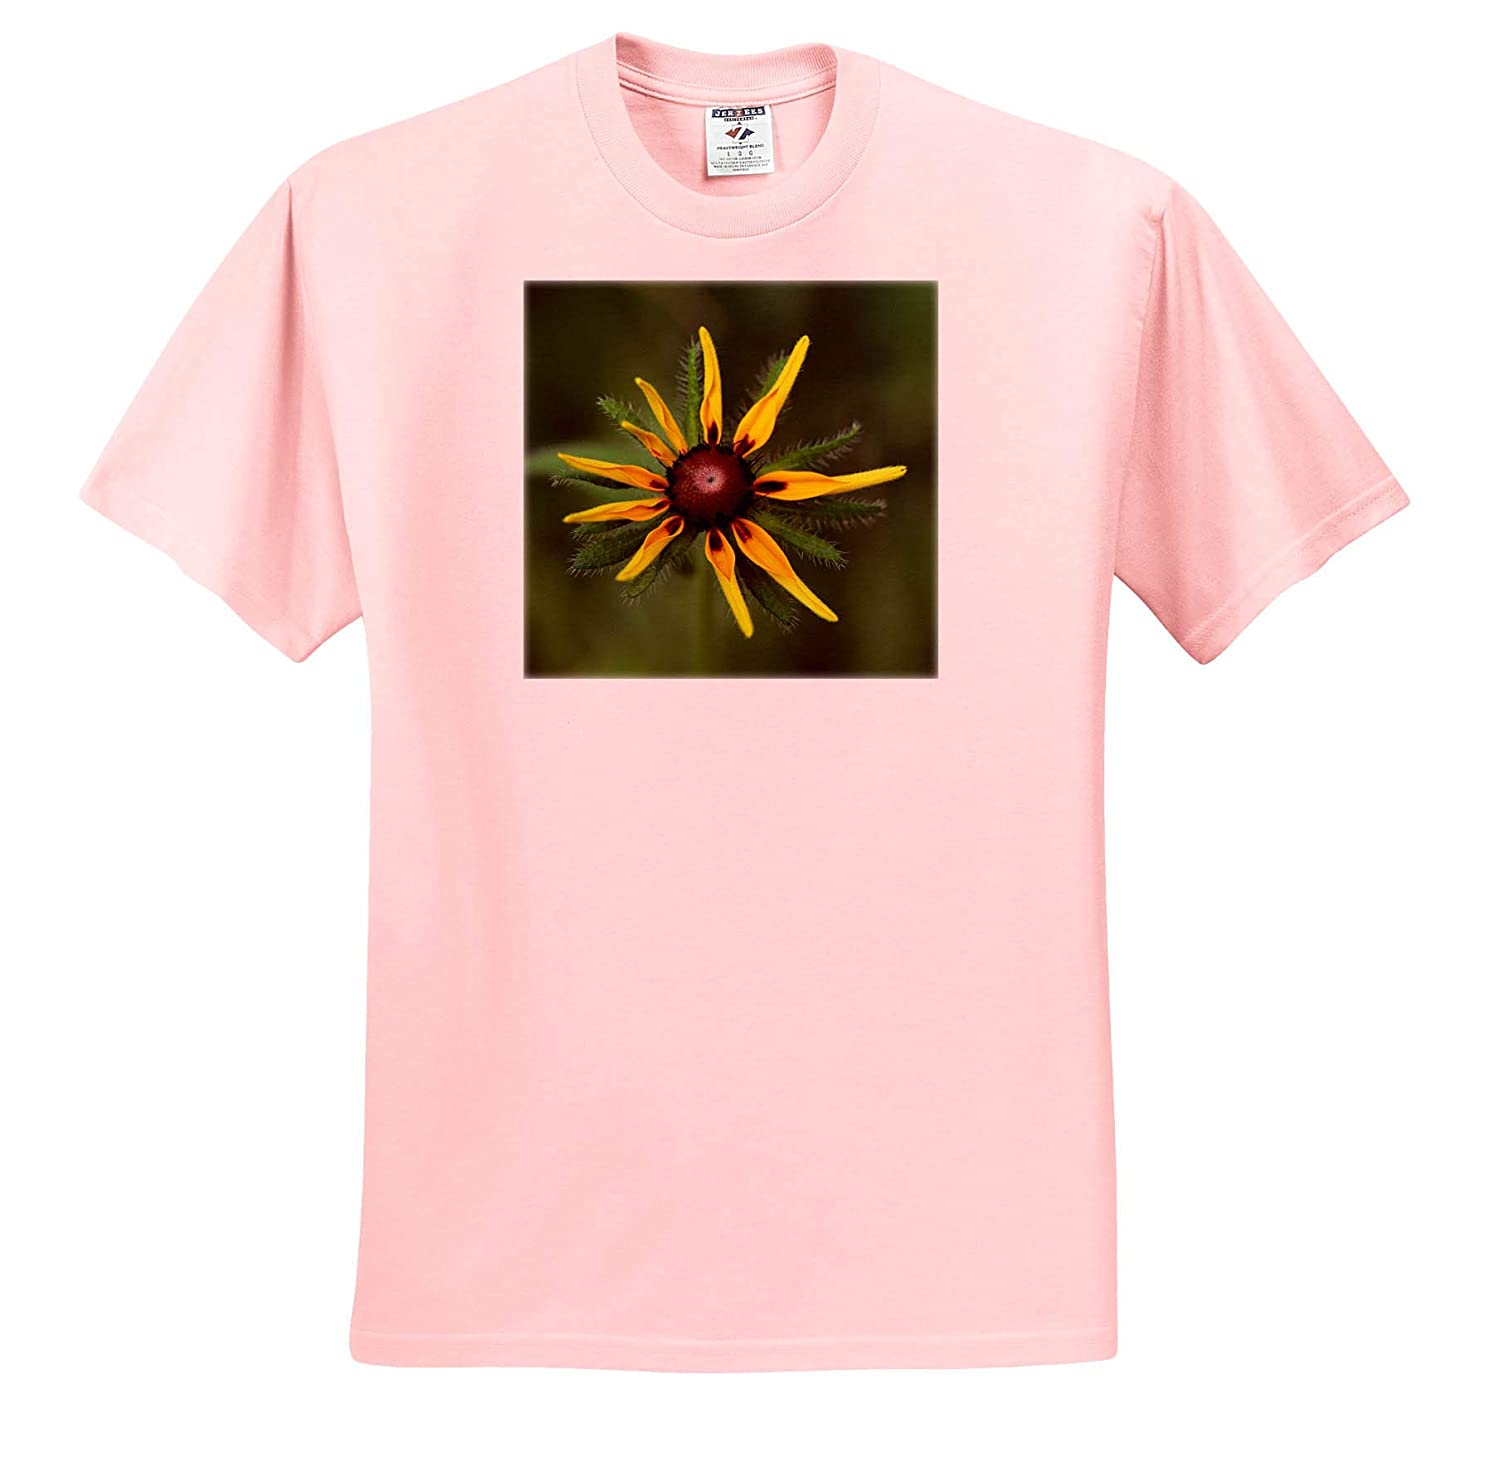 - Adult T-Shirt XL ts/_320122 3dRose Stamp City Flowers Macro Photograph of a Black Eyed Susan About to Open